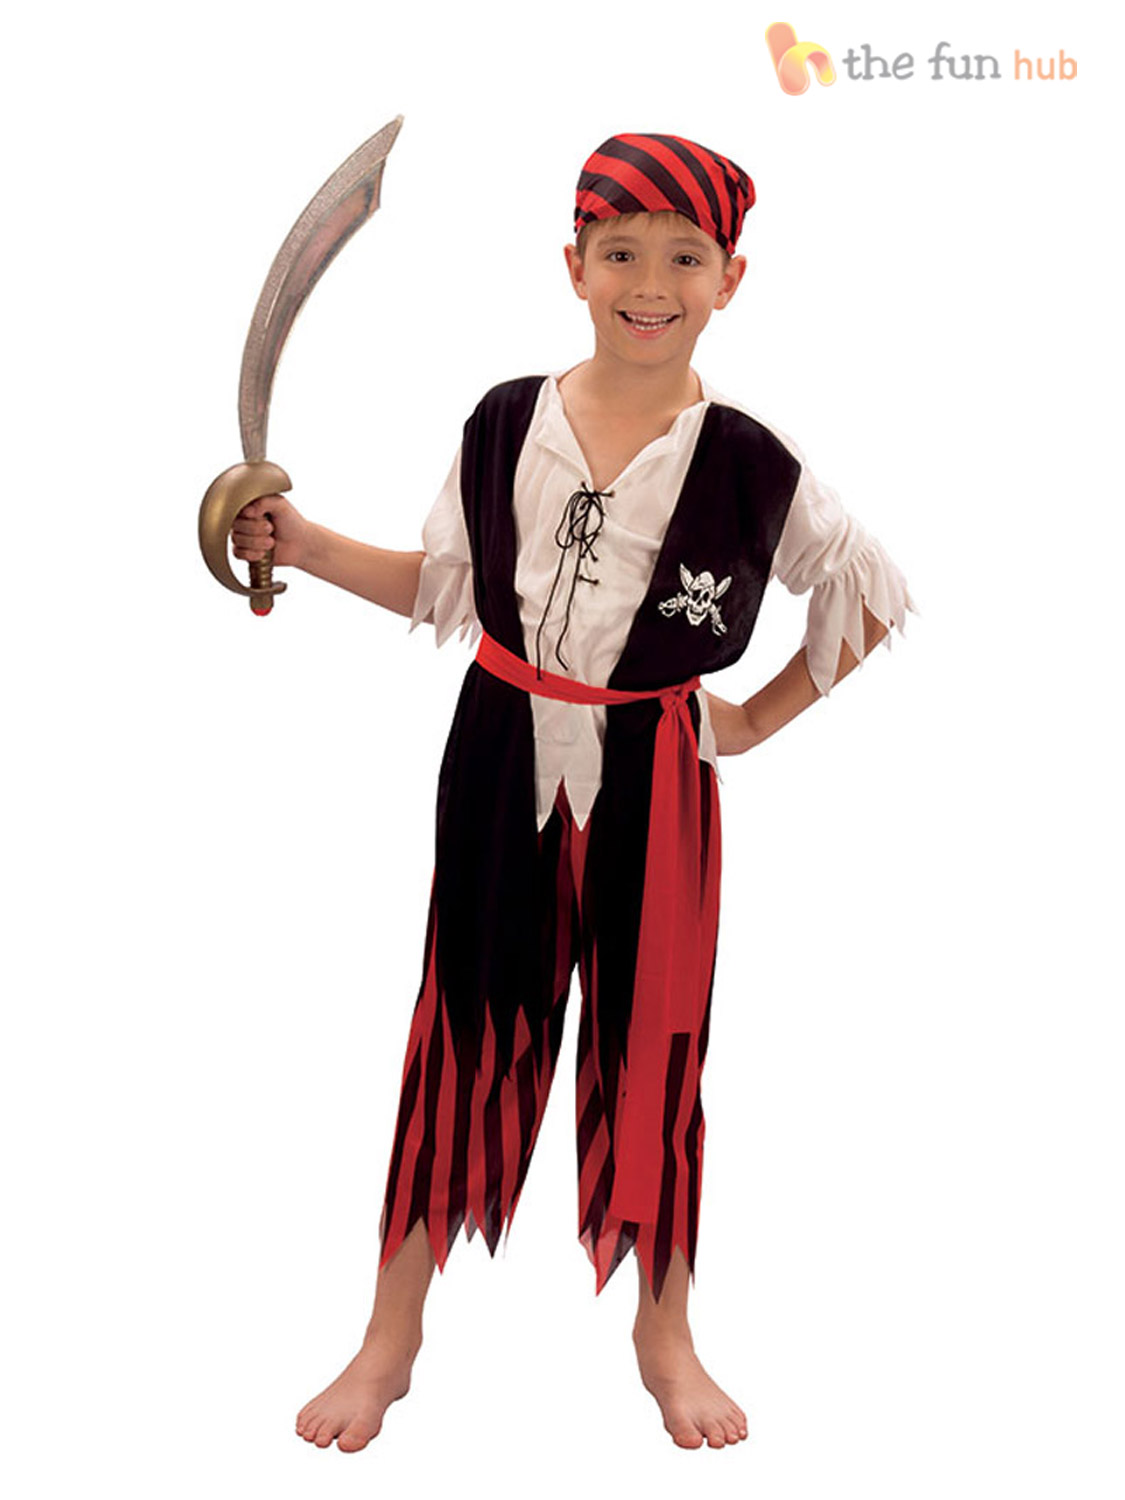 Boys-Pirate-Costume-Kids-Caribbean-Fancy-Dress-Outfit-  sc 1 st  eBay & Boys Pirate Costume Kids Caribbean Fancy Dress Outfit Age 4 5 6 7 8 ...